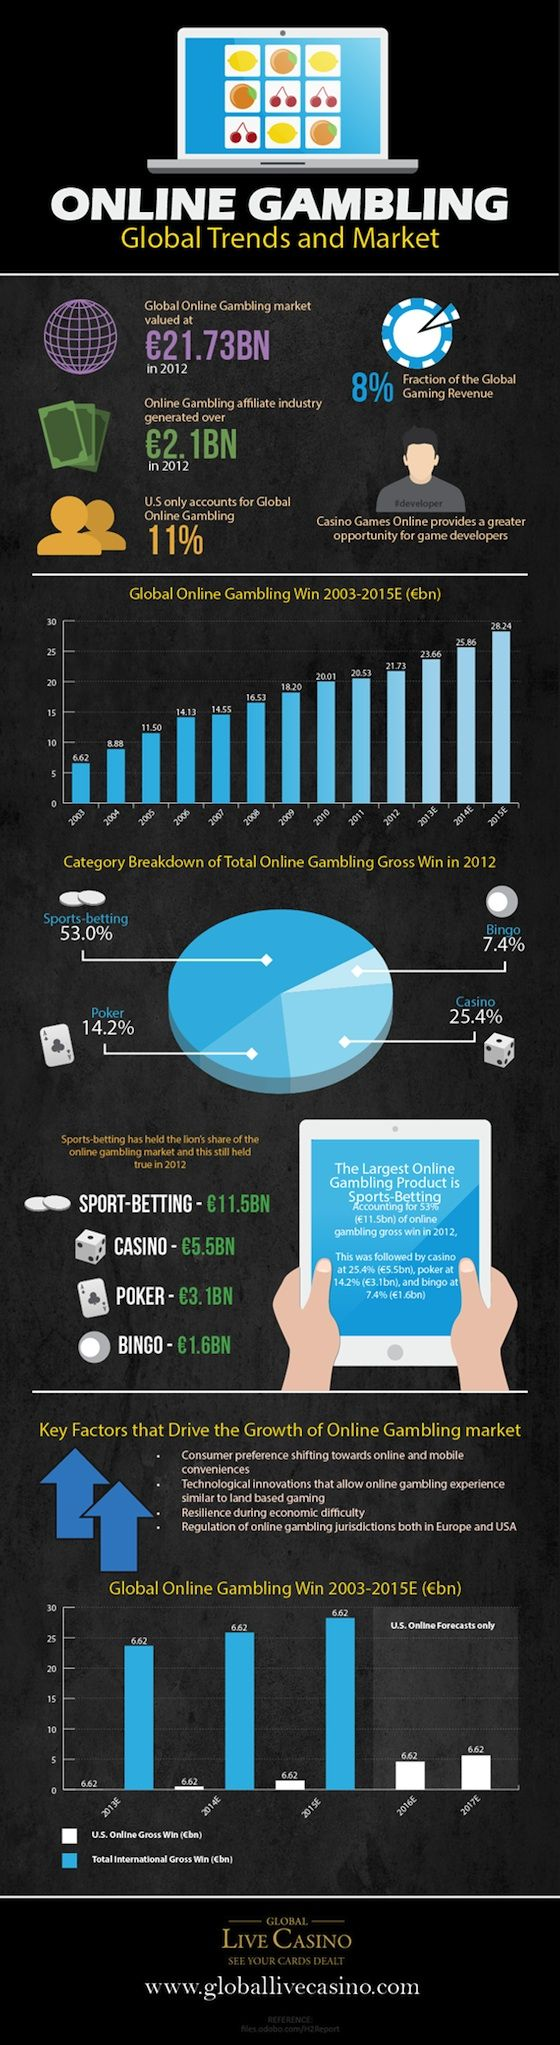 This infographic presents vital data on global trends and analysis about gambling online.